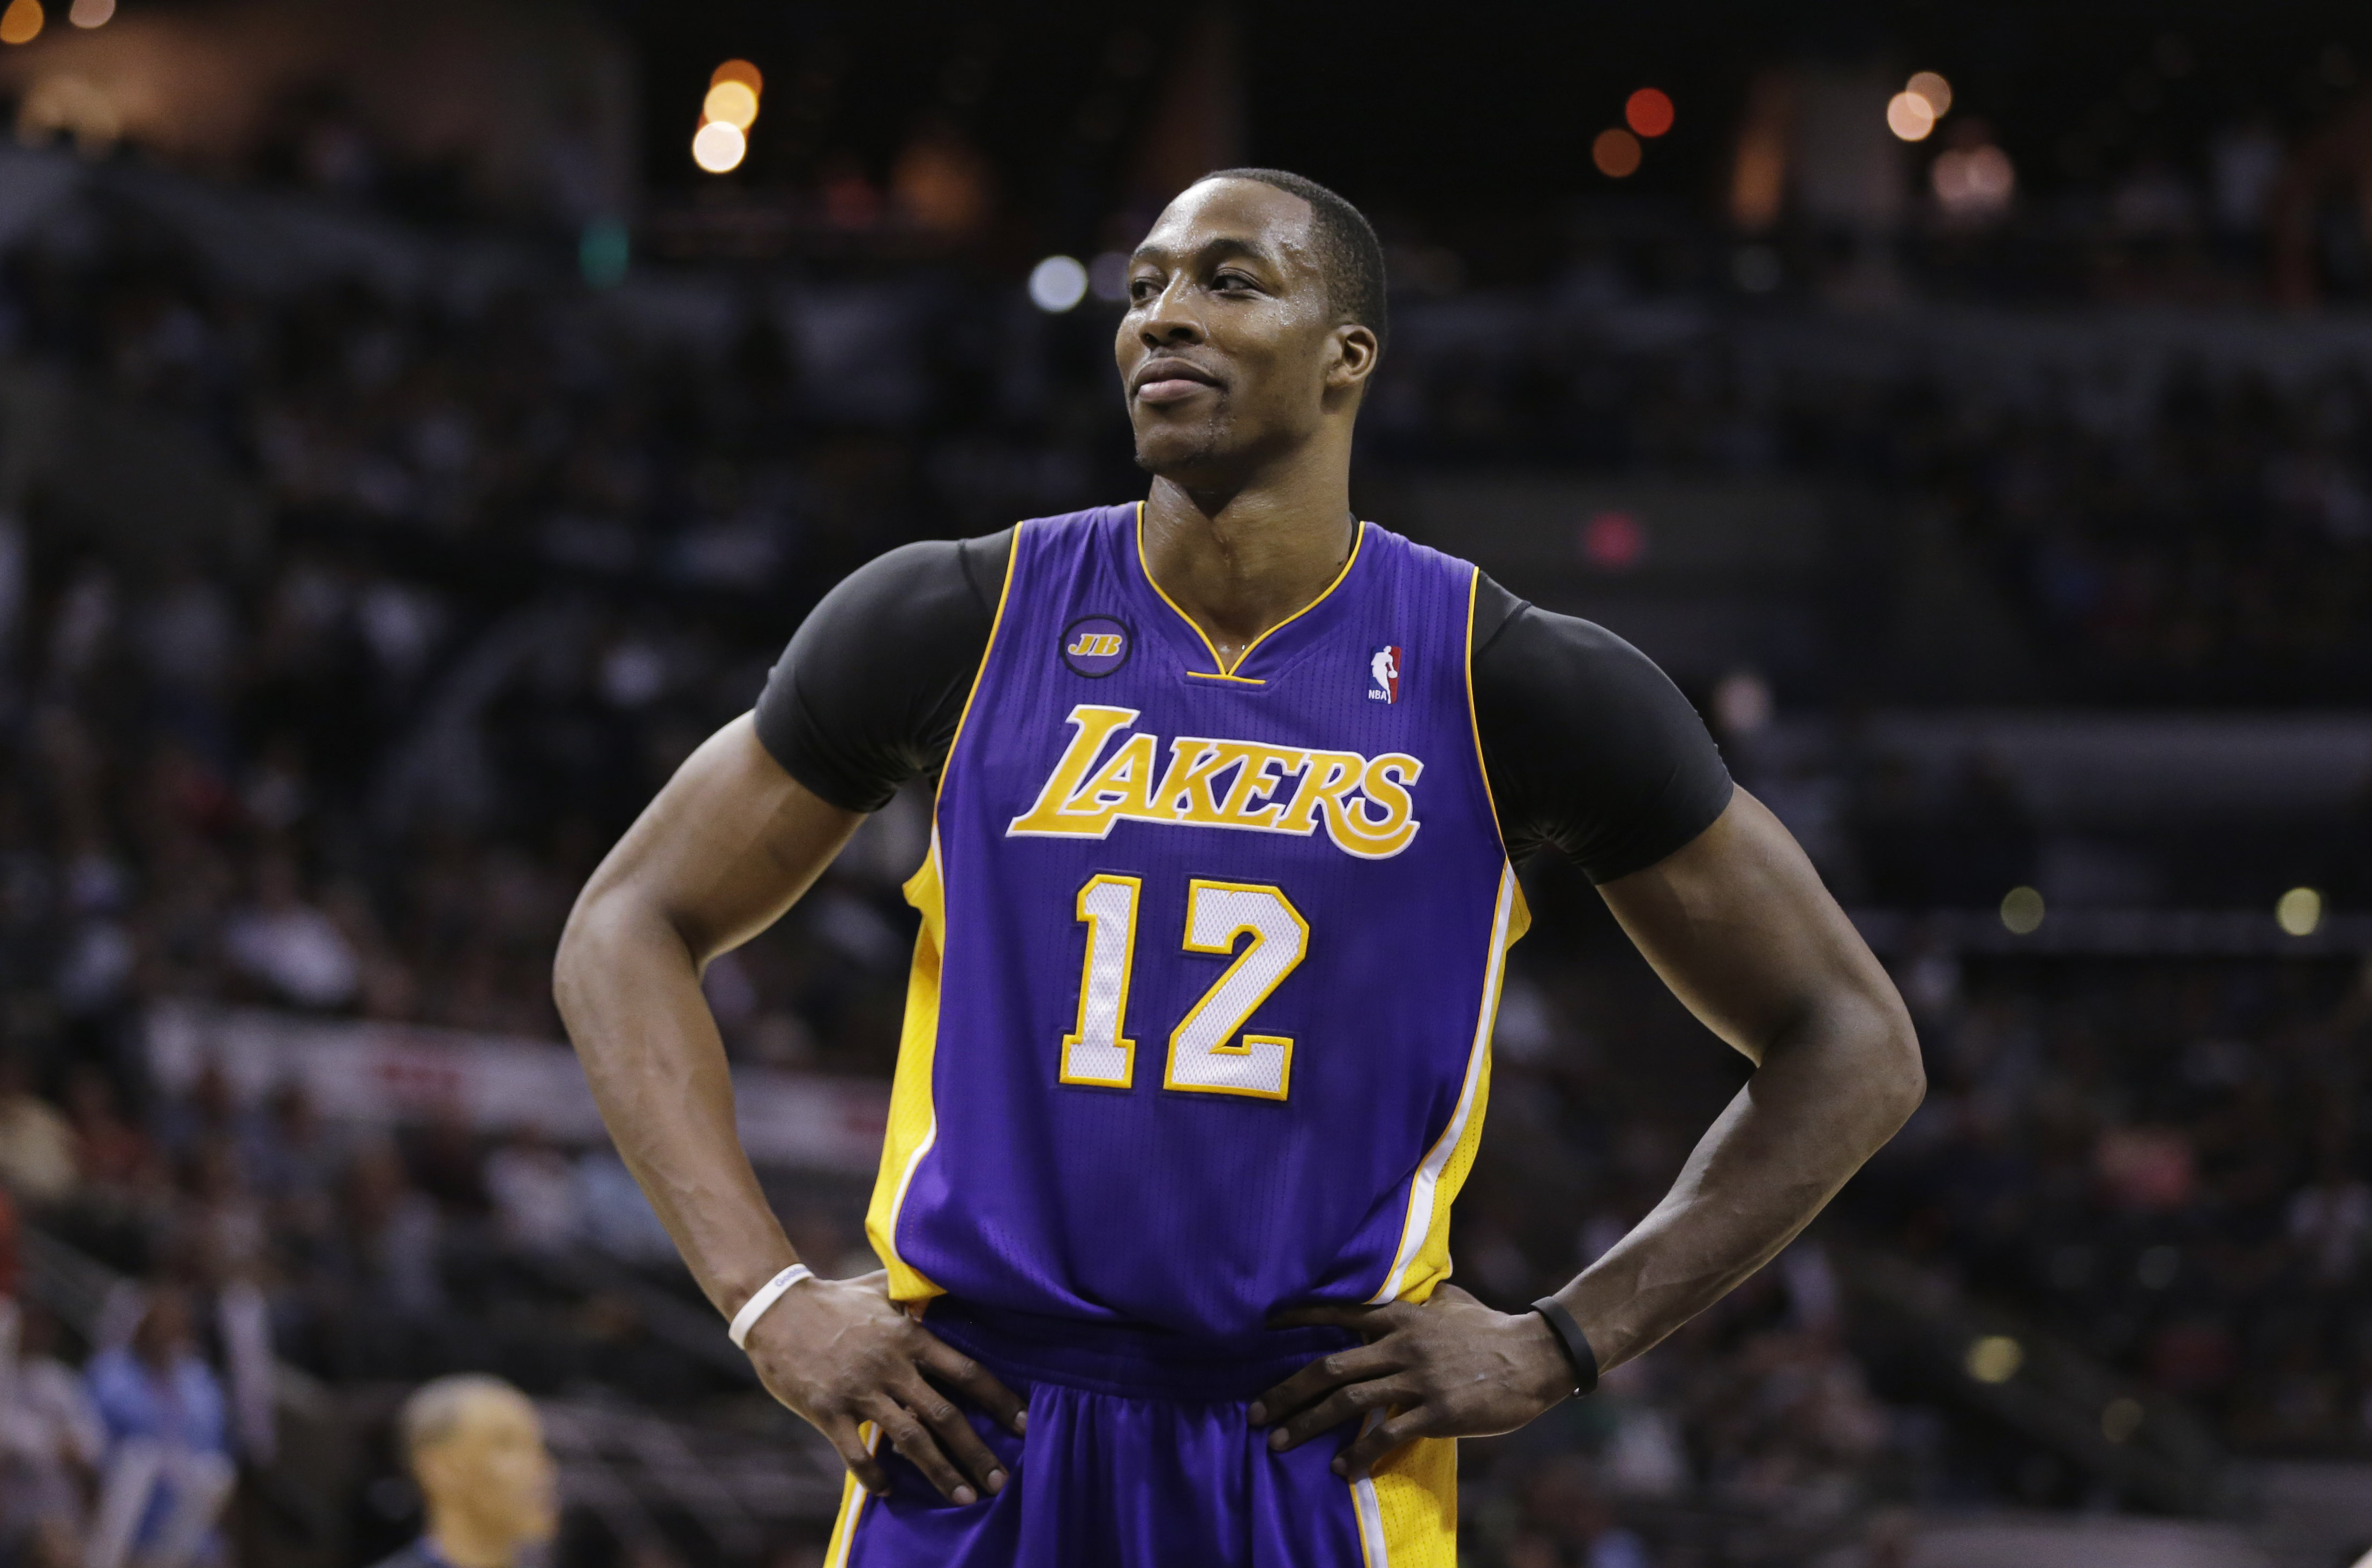 Los Angeles Lakers' Dwight Howard during the second half of Game 1 of an NBA playoffs basketball game against the San Antonio Spurs, Sunday, April 21, 2013, in San Antonio. San Antonio won 91-79. (AP Photo/Eric Gay)